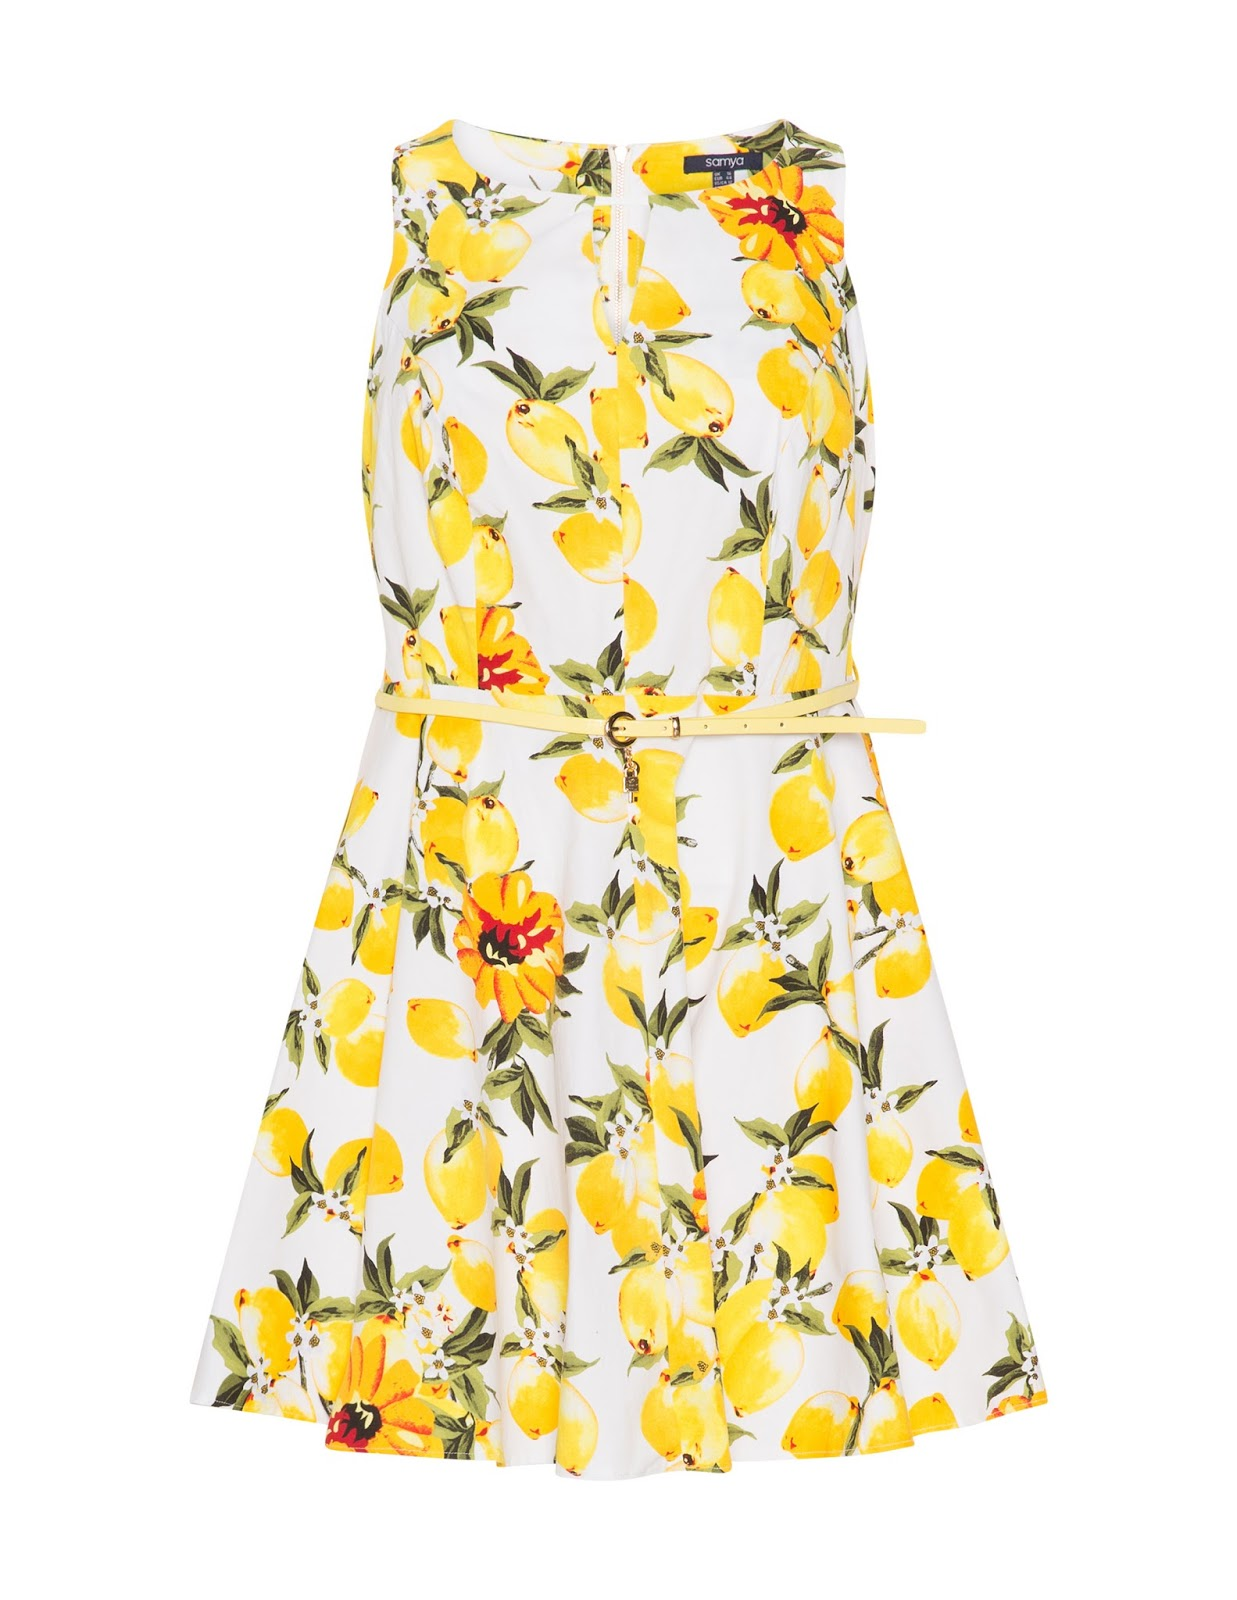 eac8641a Dressing the Petite Plus Apple #10...12 steps to styling the Fit and Flare  dress.